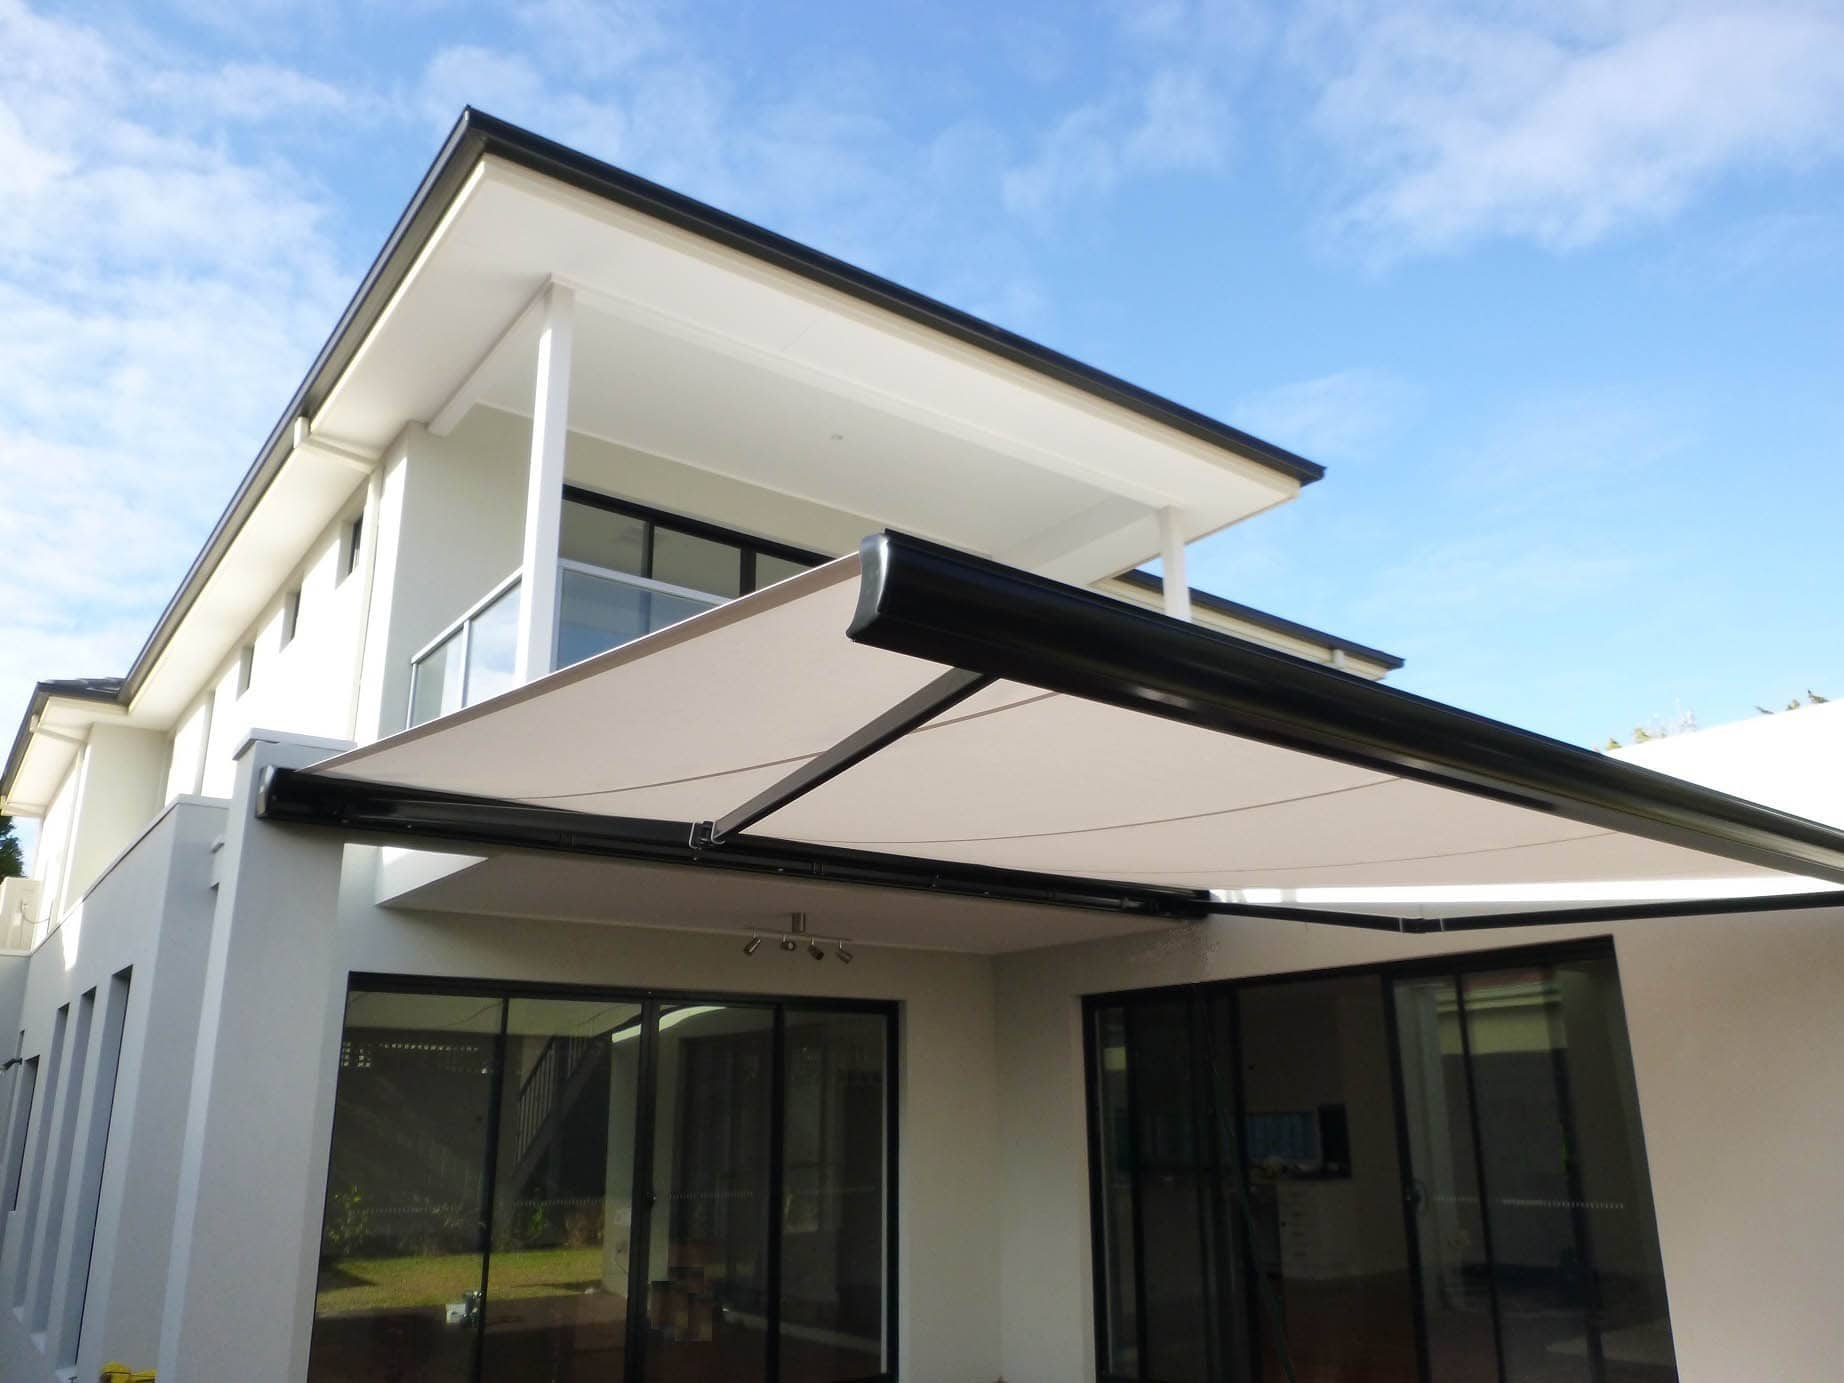 RETRACTABLE AWNING (5)